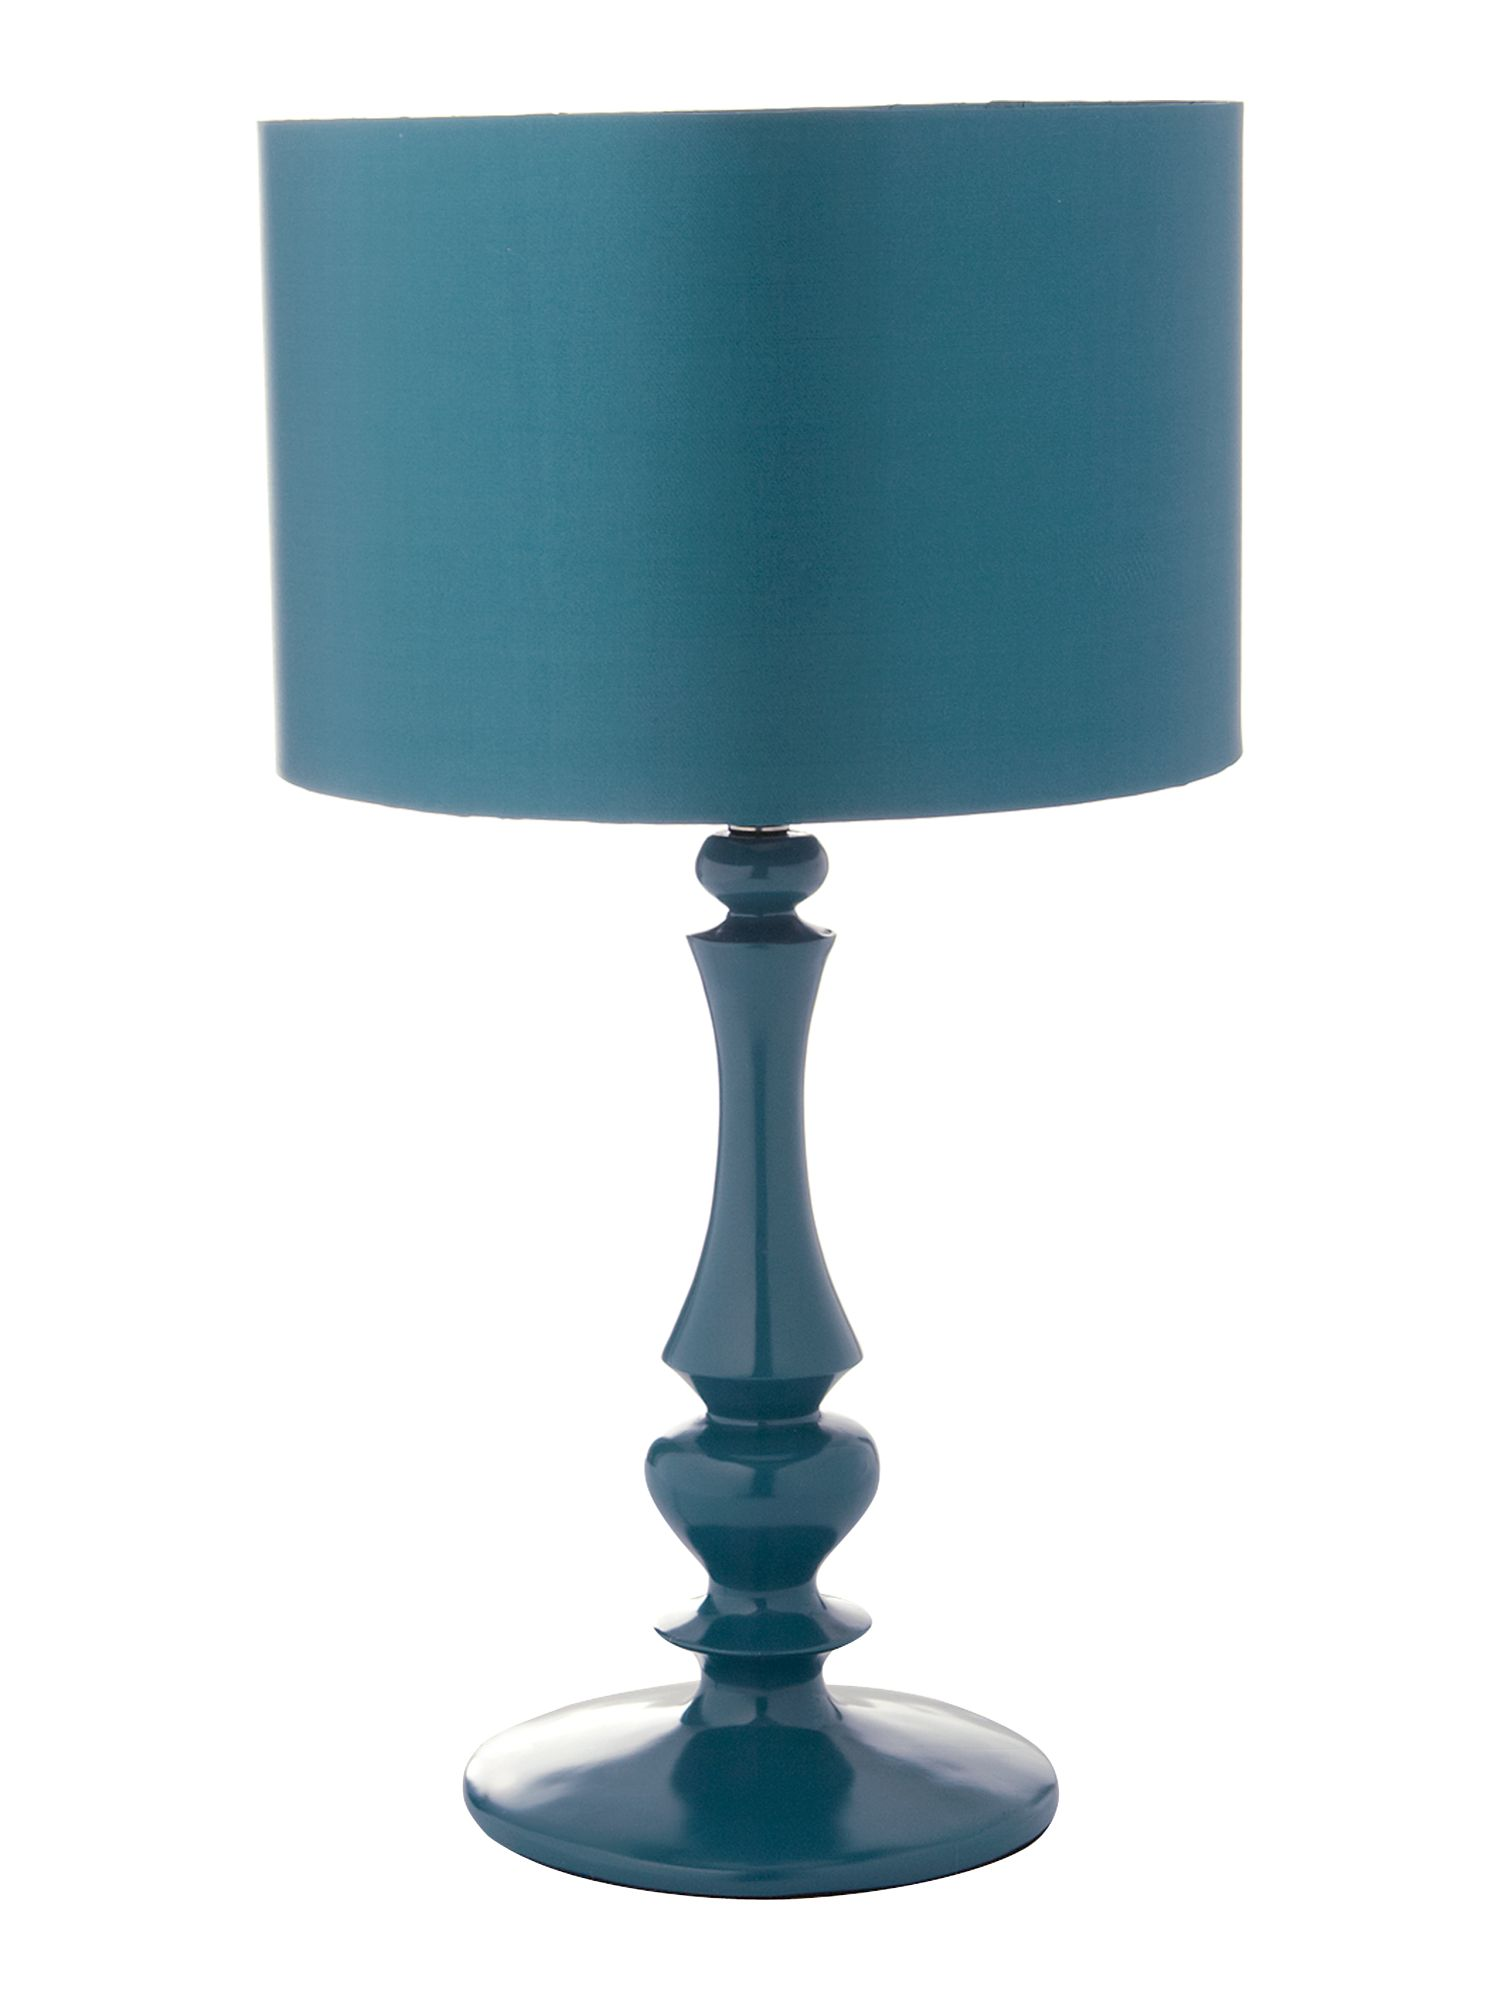 Teal Table Lamps on Sophie Teal Turned Table Lamp